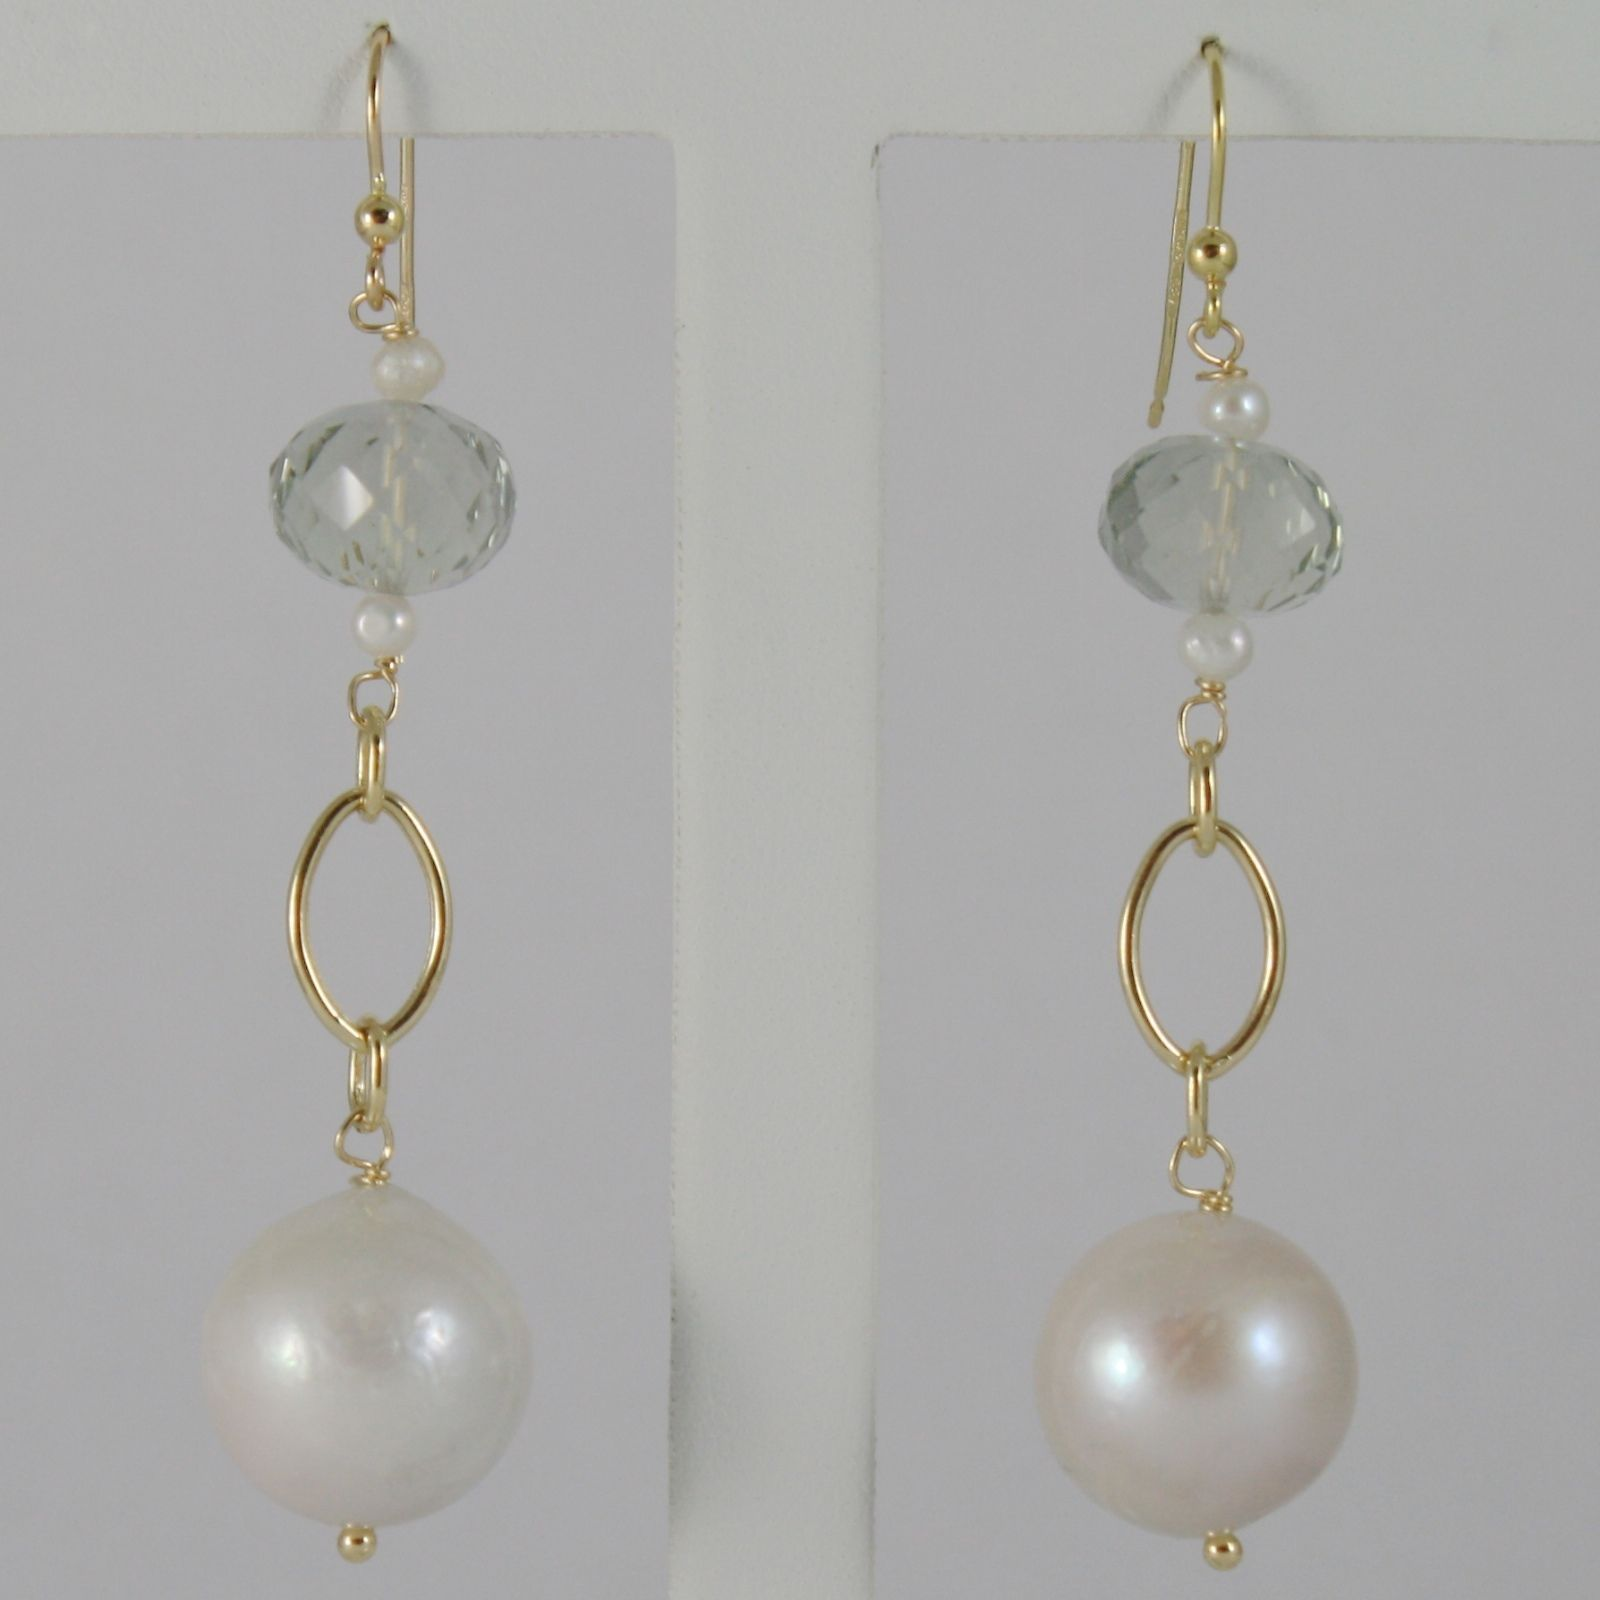 18K YELLOW GOLD PENDANT EARRINGS WITH BIG 12 MM WHITE FW PEARLS AND PRASIOLITE